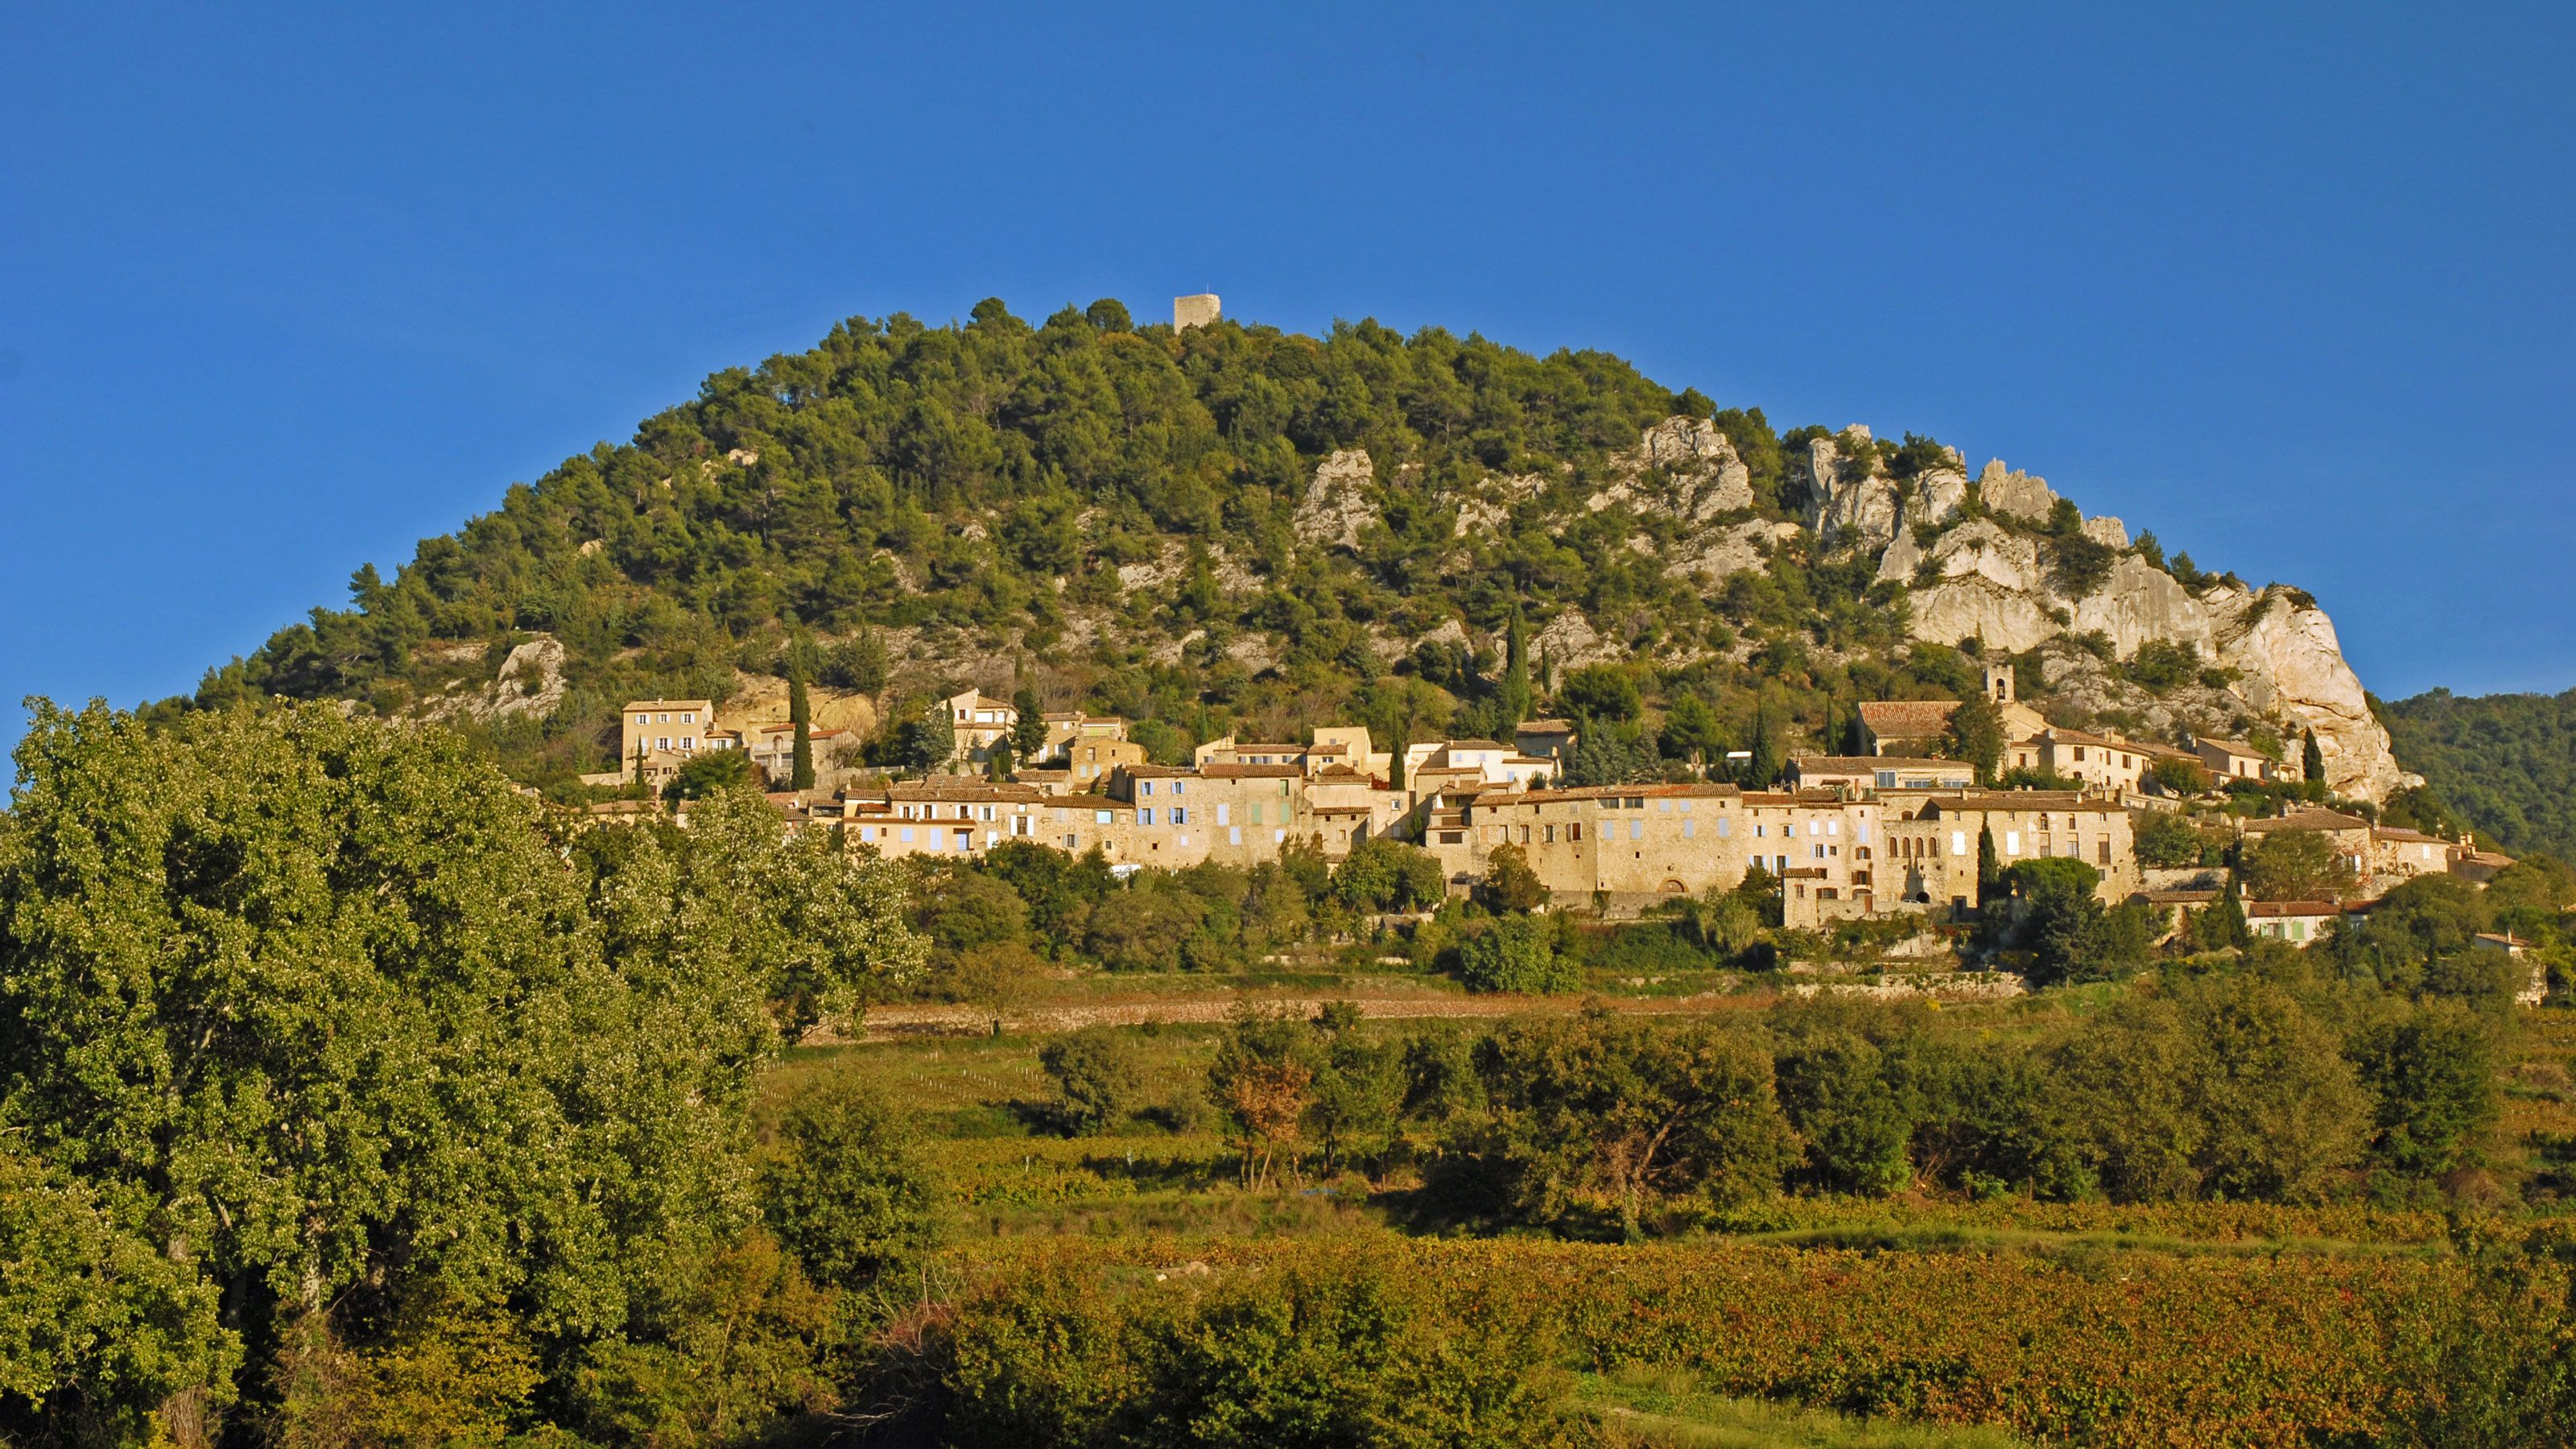 The village of Chateauneuf du Pape in France